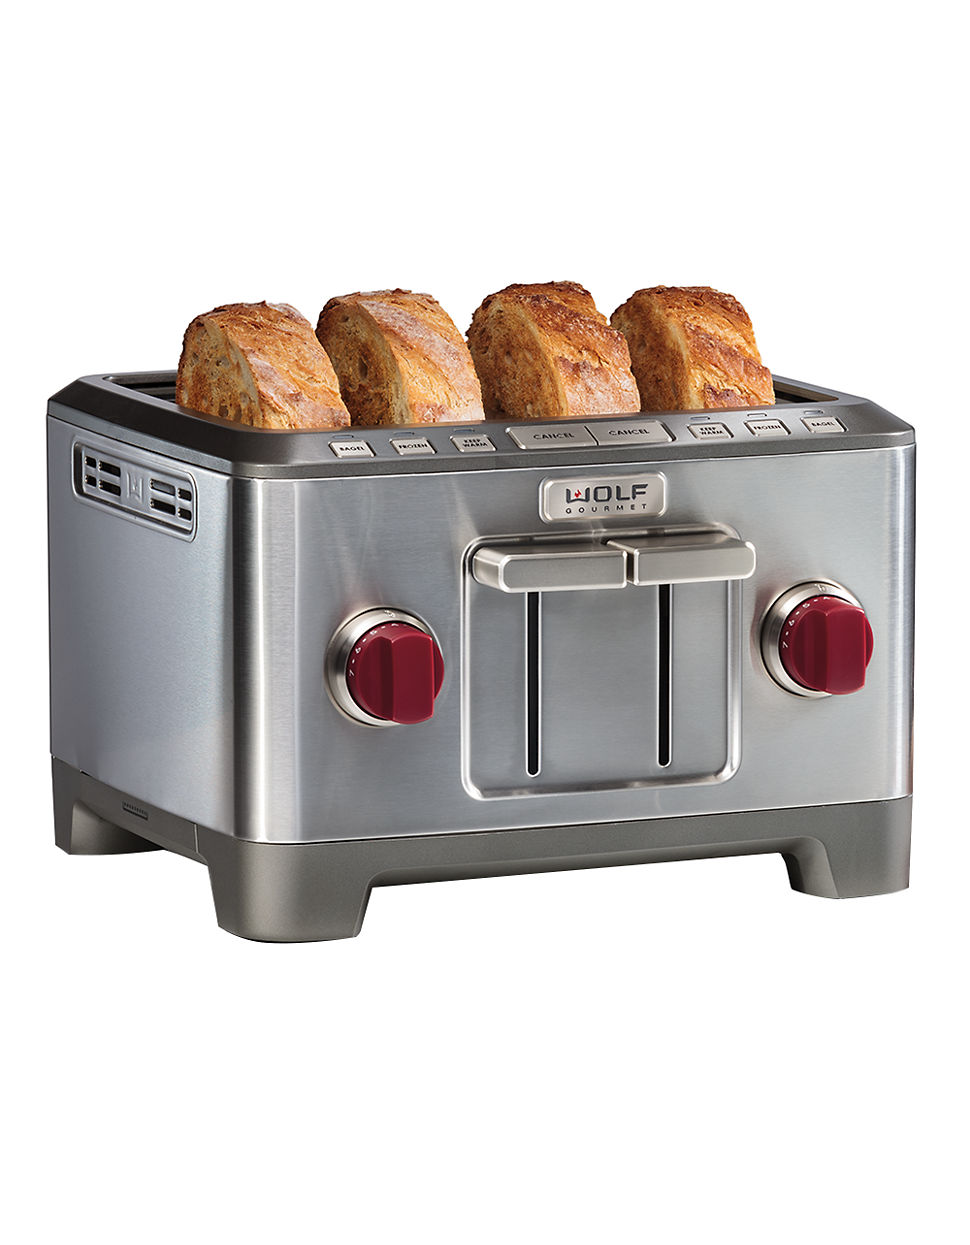 product on with by size lever sale sunroom toasters full high awesome target image the red inspirational toaster this appealing at of to attractive empire kitchenaid slot lift slice astoun check link fabulous going long